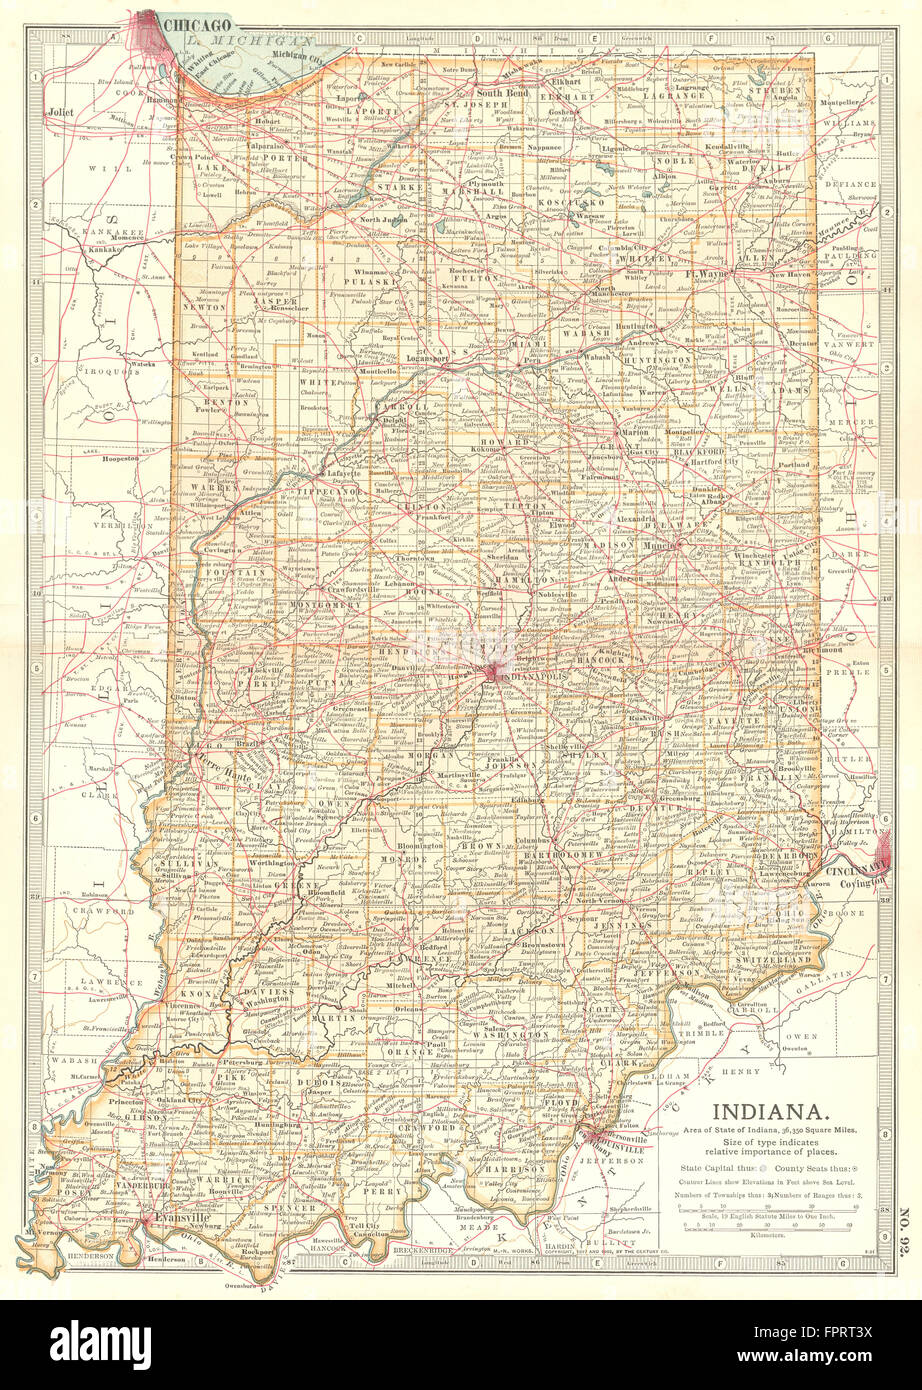 INDIANA: state map showing counties & some battlefields ... on indiana state border sign, indianapolis indiana state map, indiana statehouse map, indiana county seat map, indiana state legislature map, indiana state land map, indiana major city map, indiana state animal, indiana deer map, indiana house district map, indiana white map, indiana state city map, columbus indiana map, indiana state representative map, indiana towns map, indiana state us map, indiana state population 2013, indiana state capitel biulding, indiana state fairgrounds map, indiana travel map,